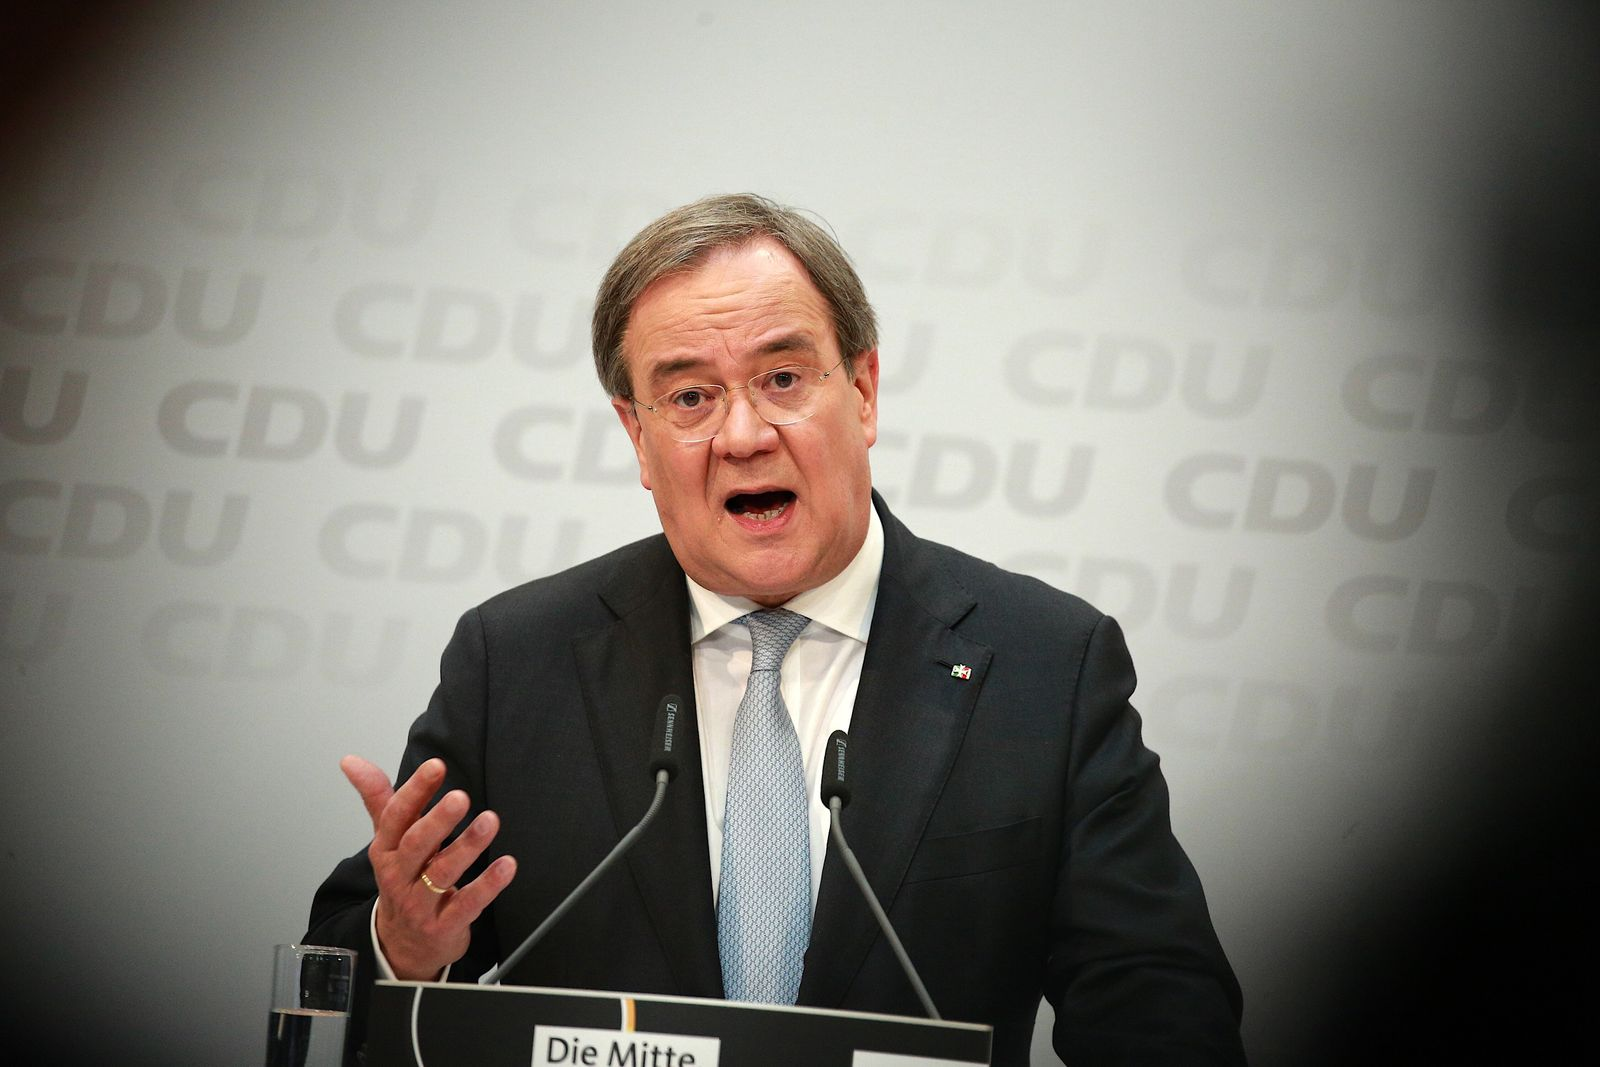 Armin Laschet Holds First Press Conference Since Election As New CDU Leader